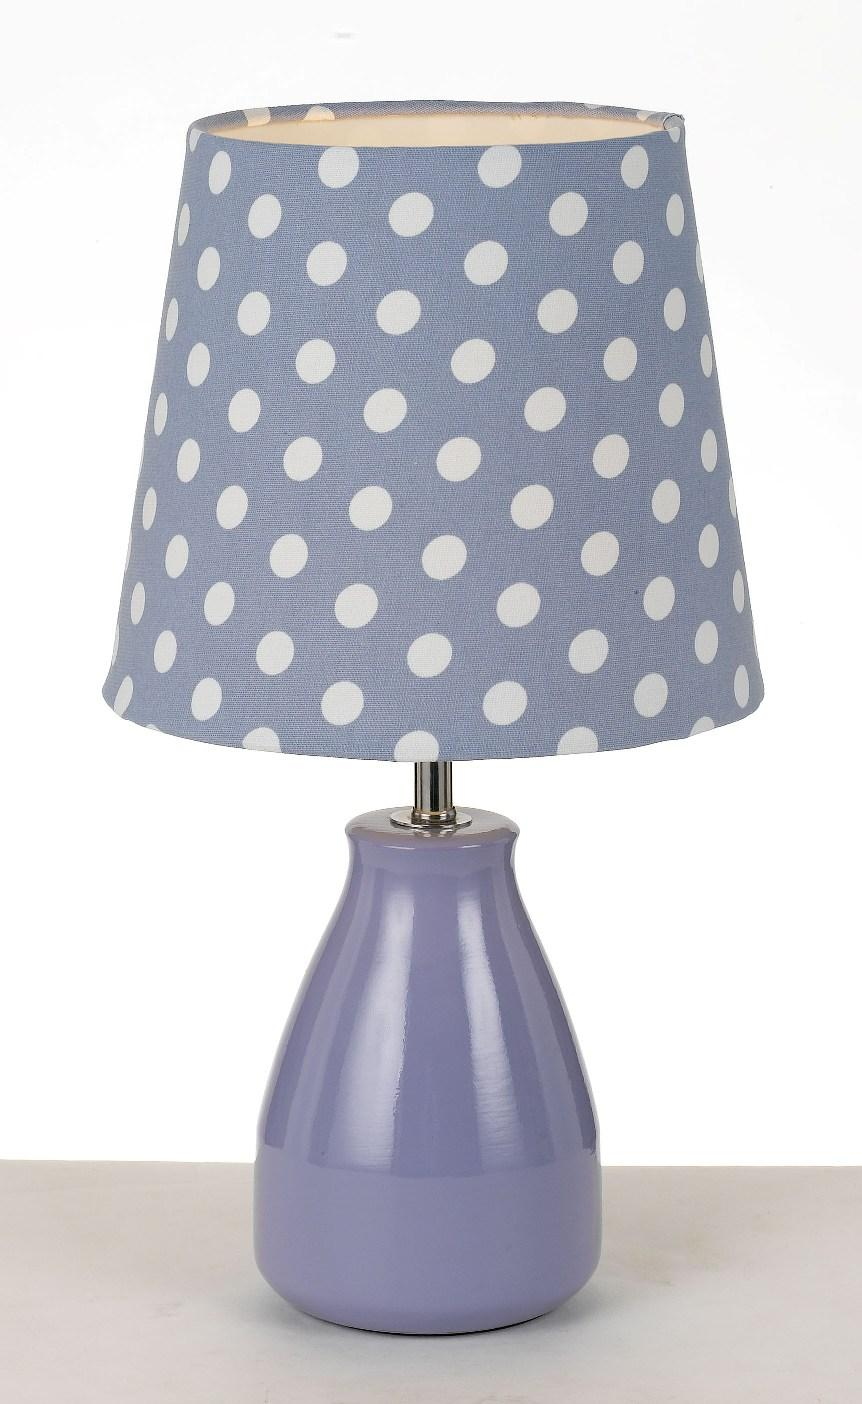 Libby table lamp purple lamps table lamps product detail libby table lamp purple geotapseo Gallery